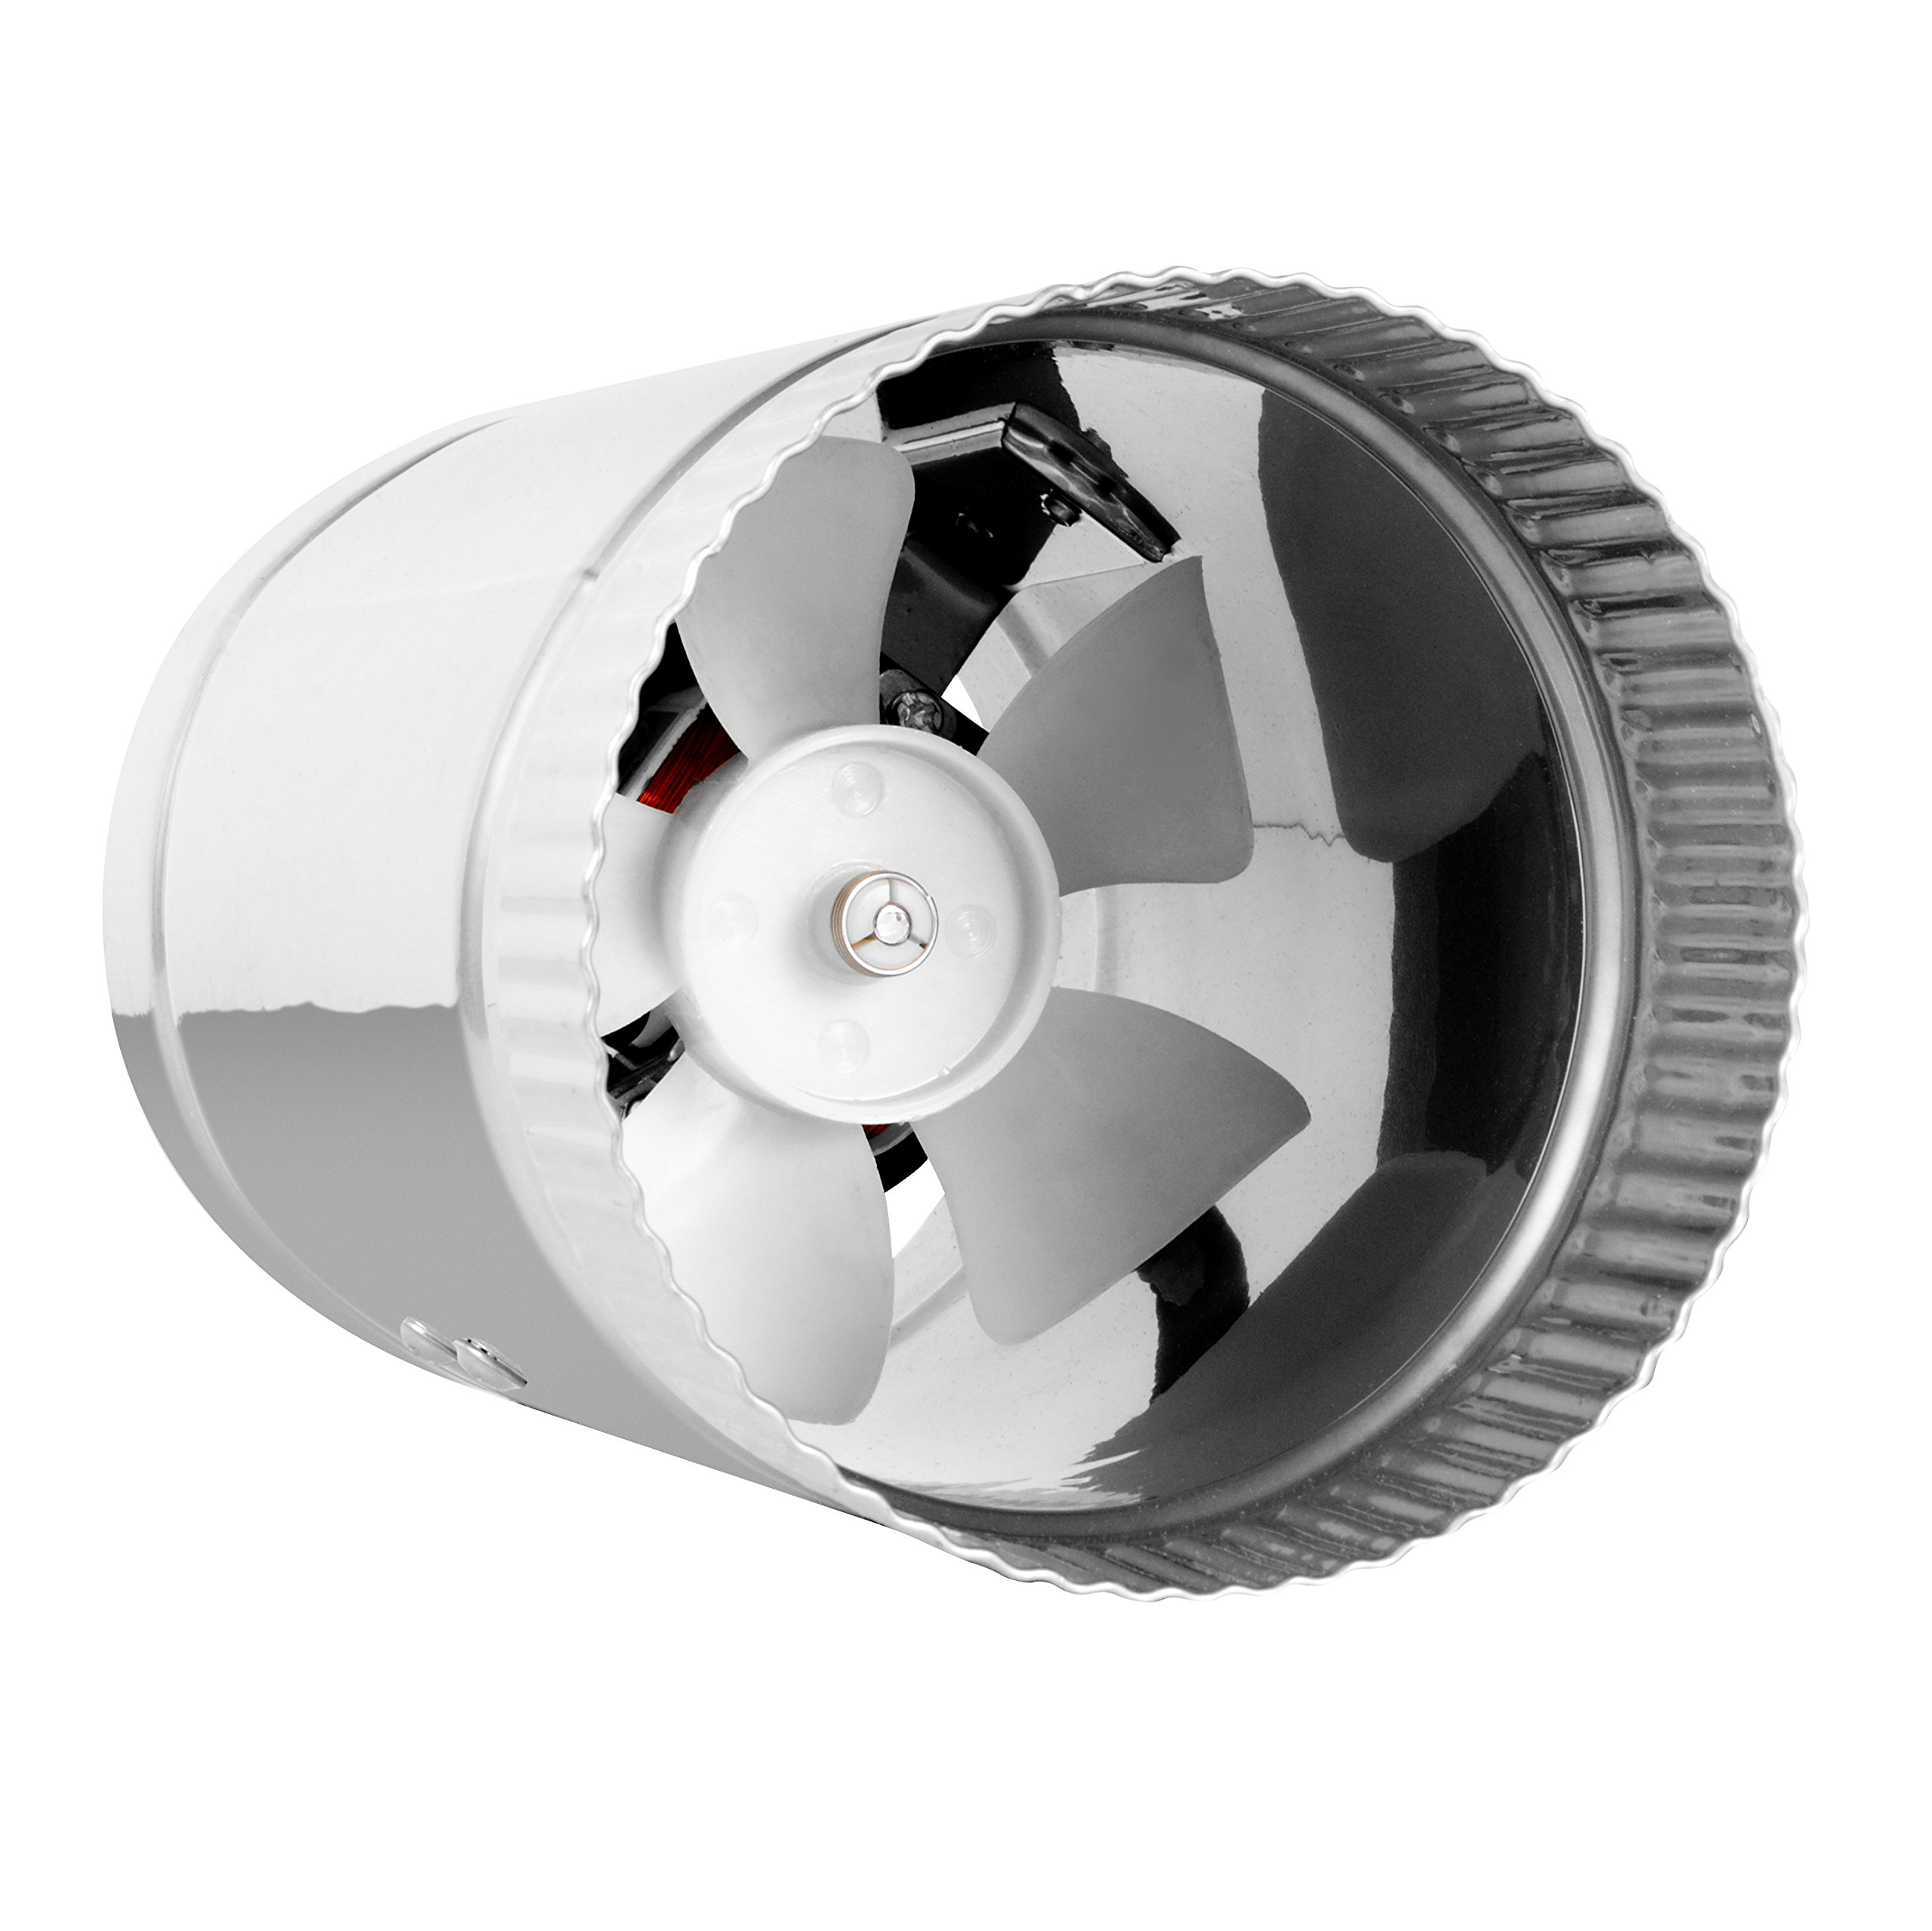 4'' Inline Fan - 100 CFM, Metal Duct Booster Fan, ETL Listed, Pre-Wired 6 FT Grounded Cord - Great For Grow Tent Exhaust and Intake, Register Booster For 4 Inch Ducts